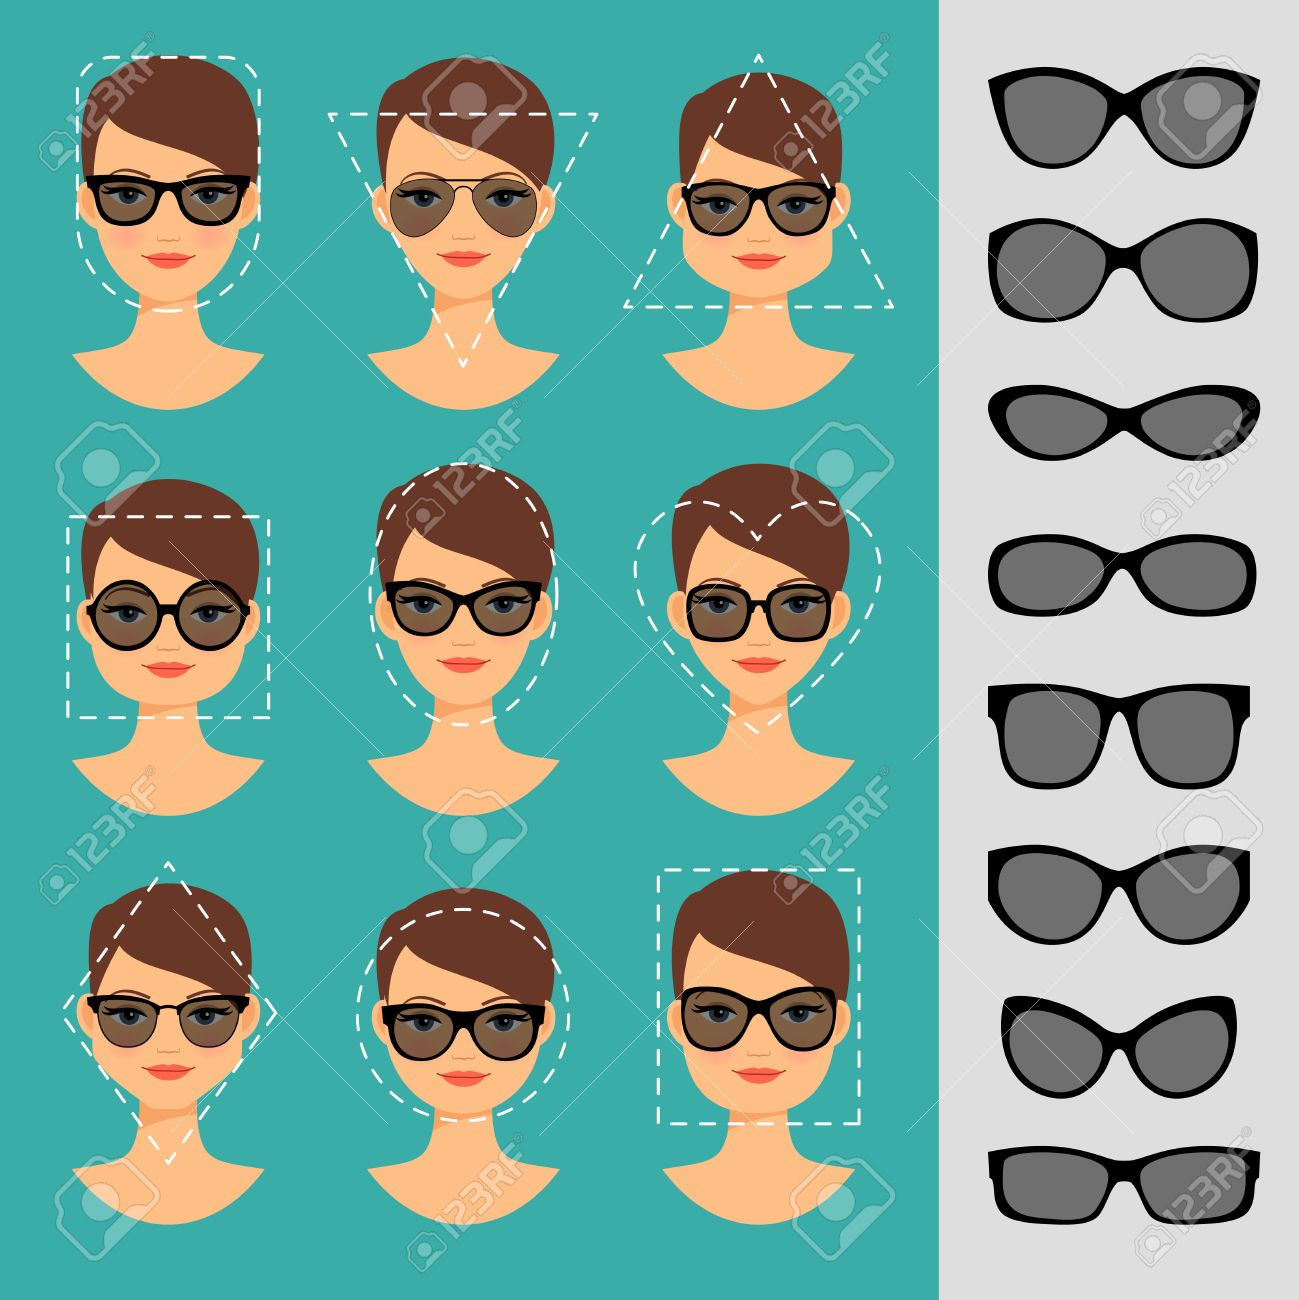 6b9f0507fb9 Womens Sunglasses Shapes for different face shapes vector illustration Stock  Vector - 56467596